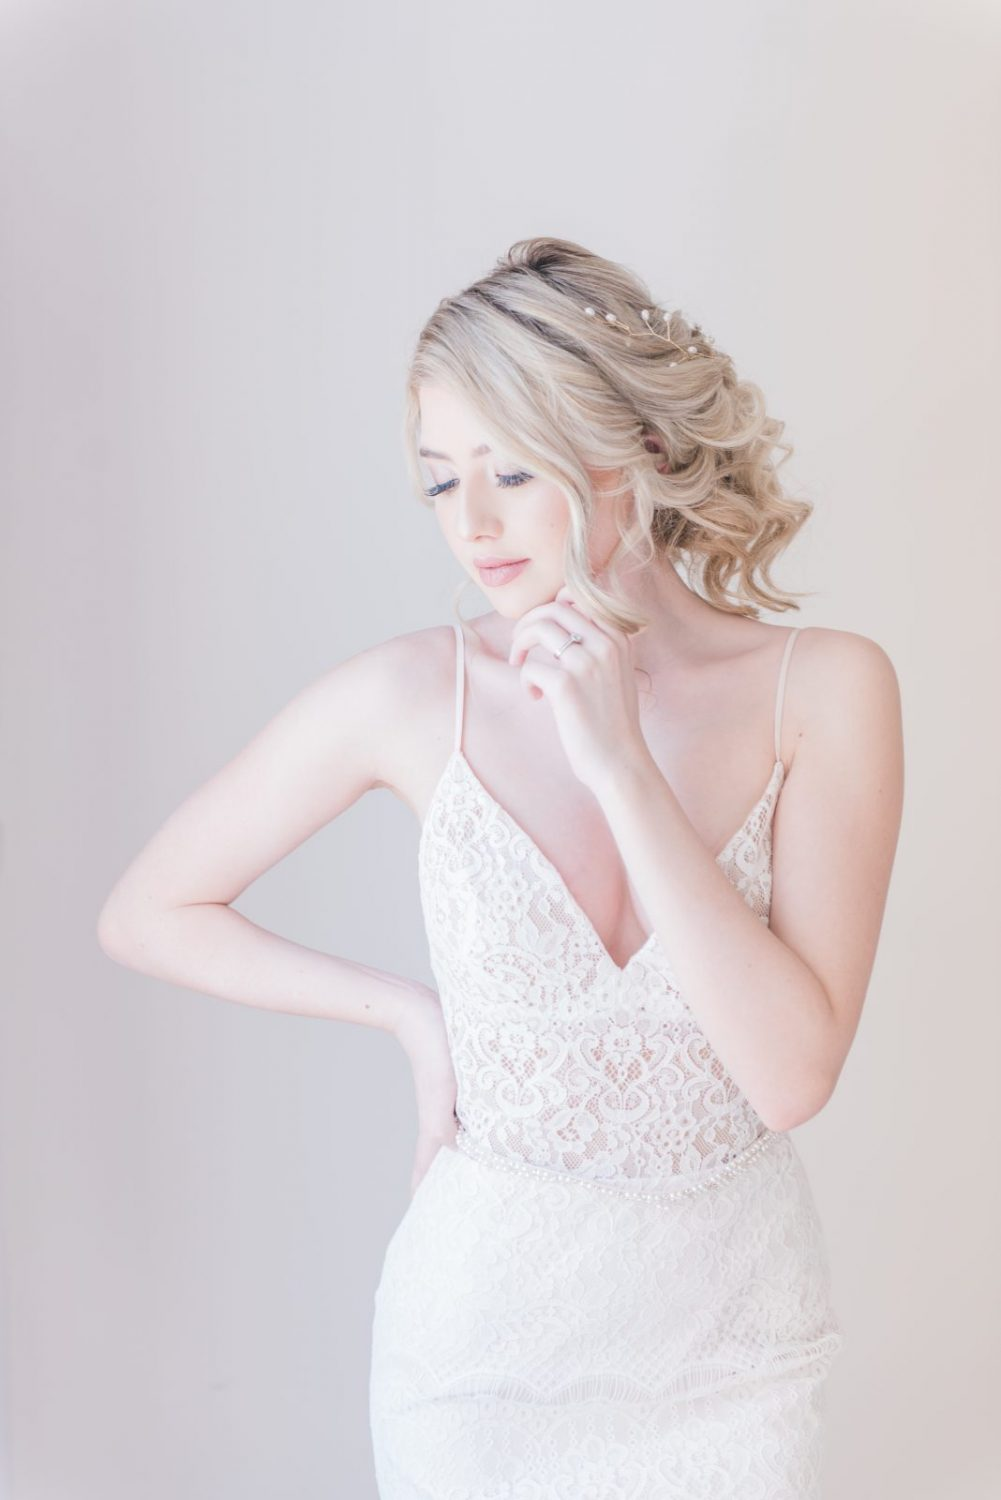 Bridal look, boho updo, lace gown - photography by emma